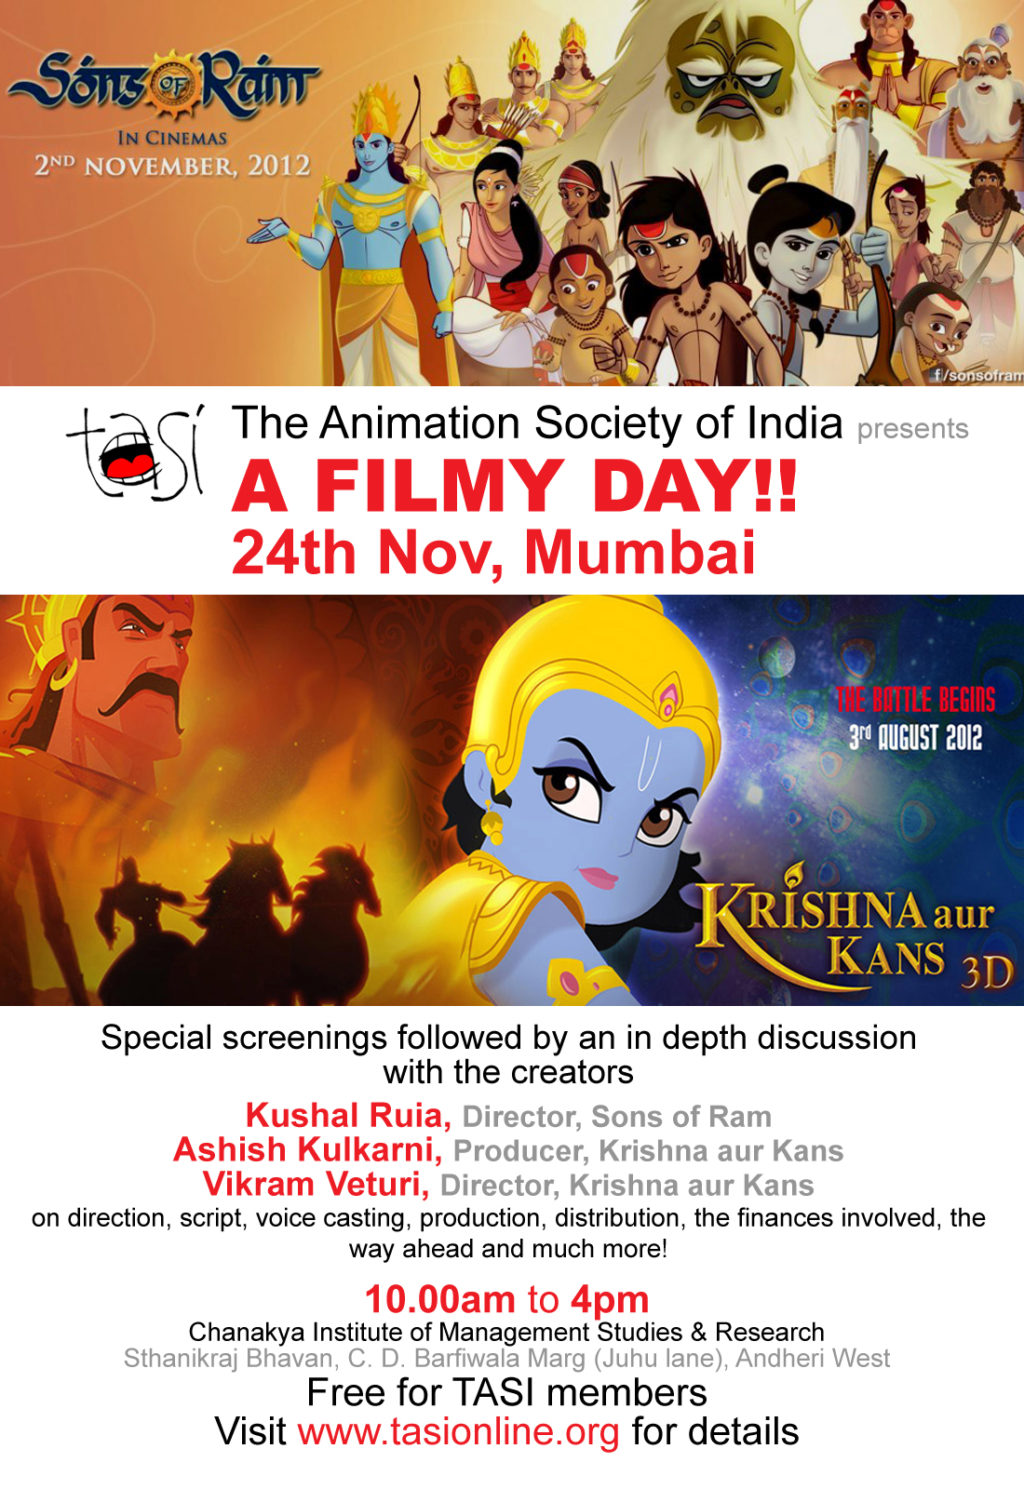 A Filmy Day